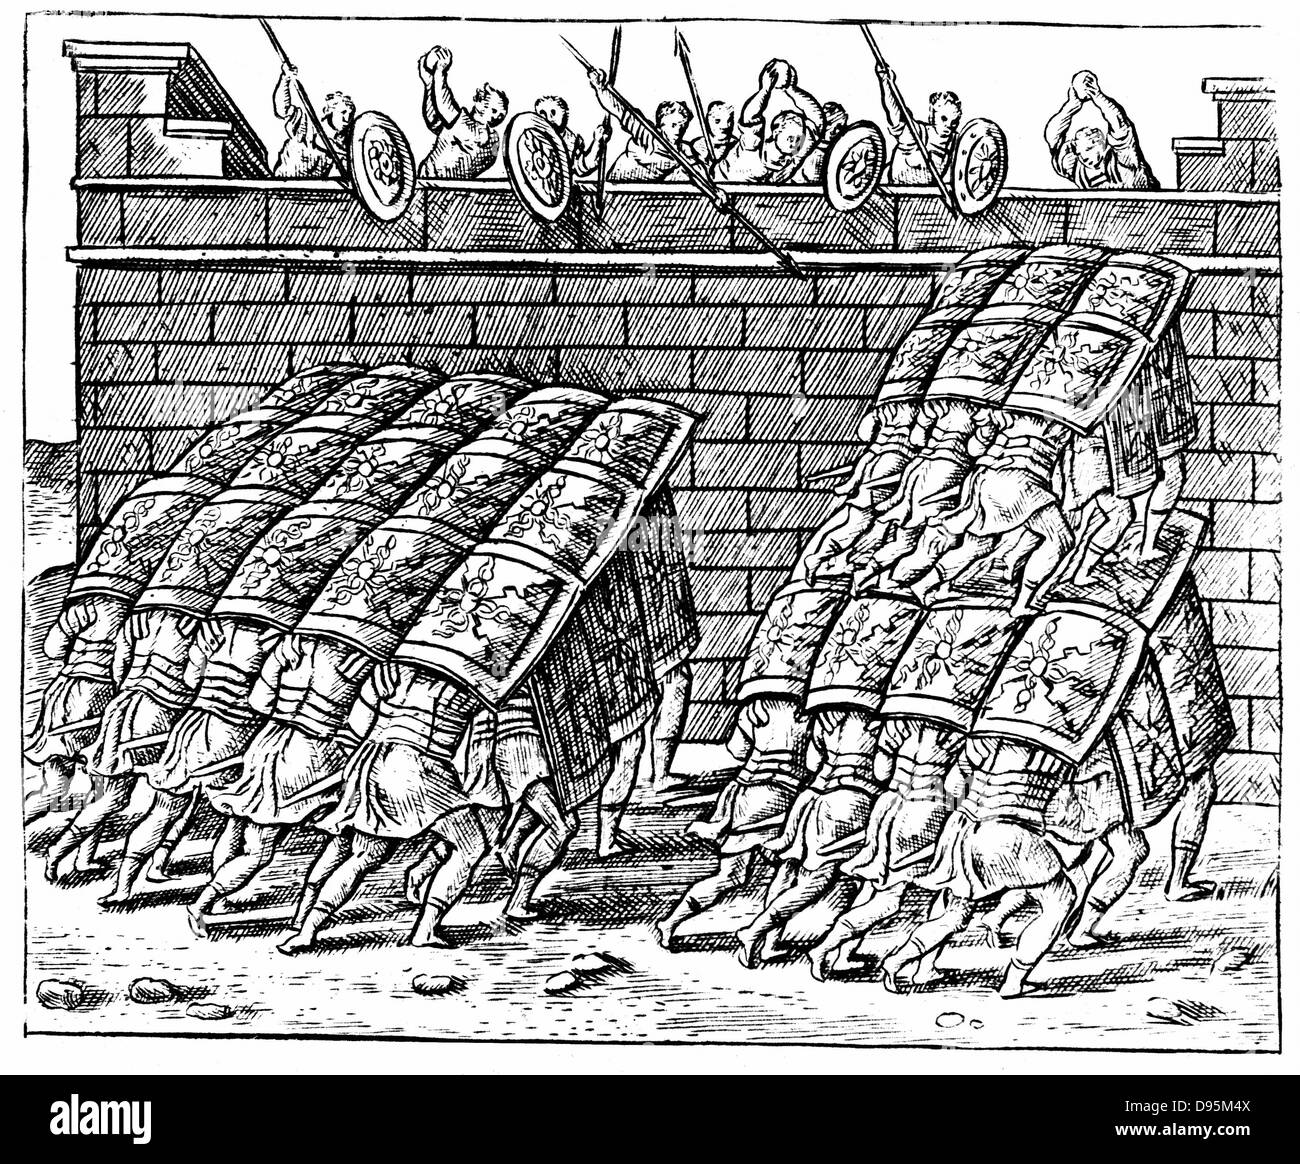 Roman soldiers forming a Tortoise with their shields and approaching the walls of a besieged fortress. Engraving - Stock Image